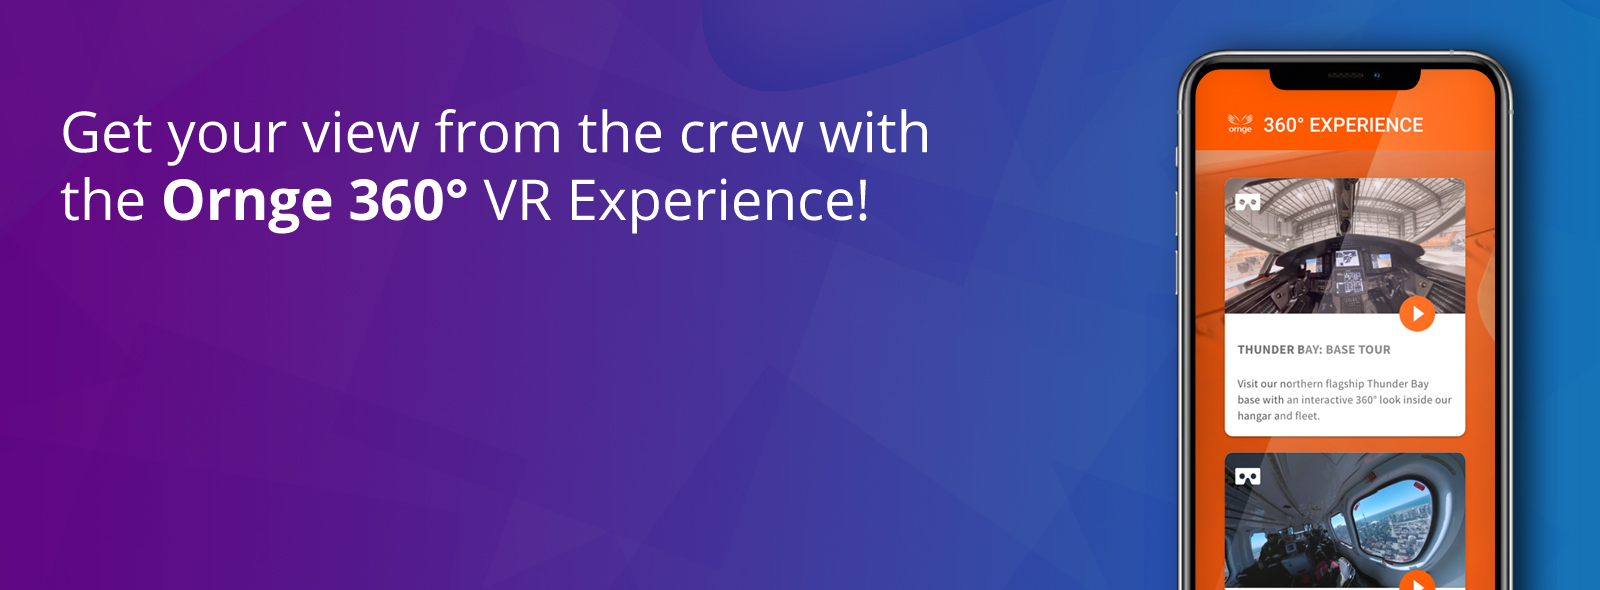 Get your view from the crew with  the Ornge 360° VR Experience!